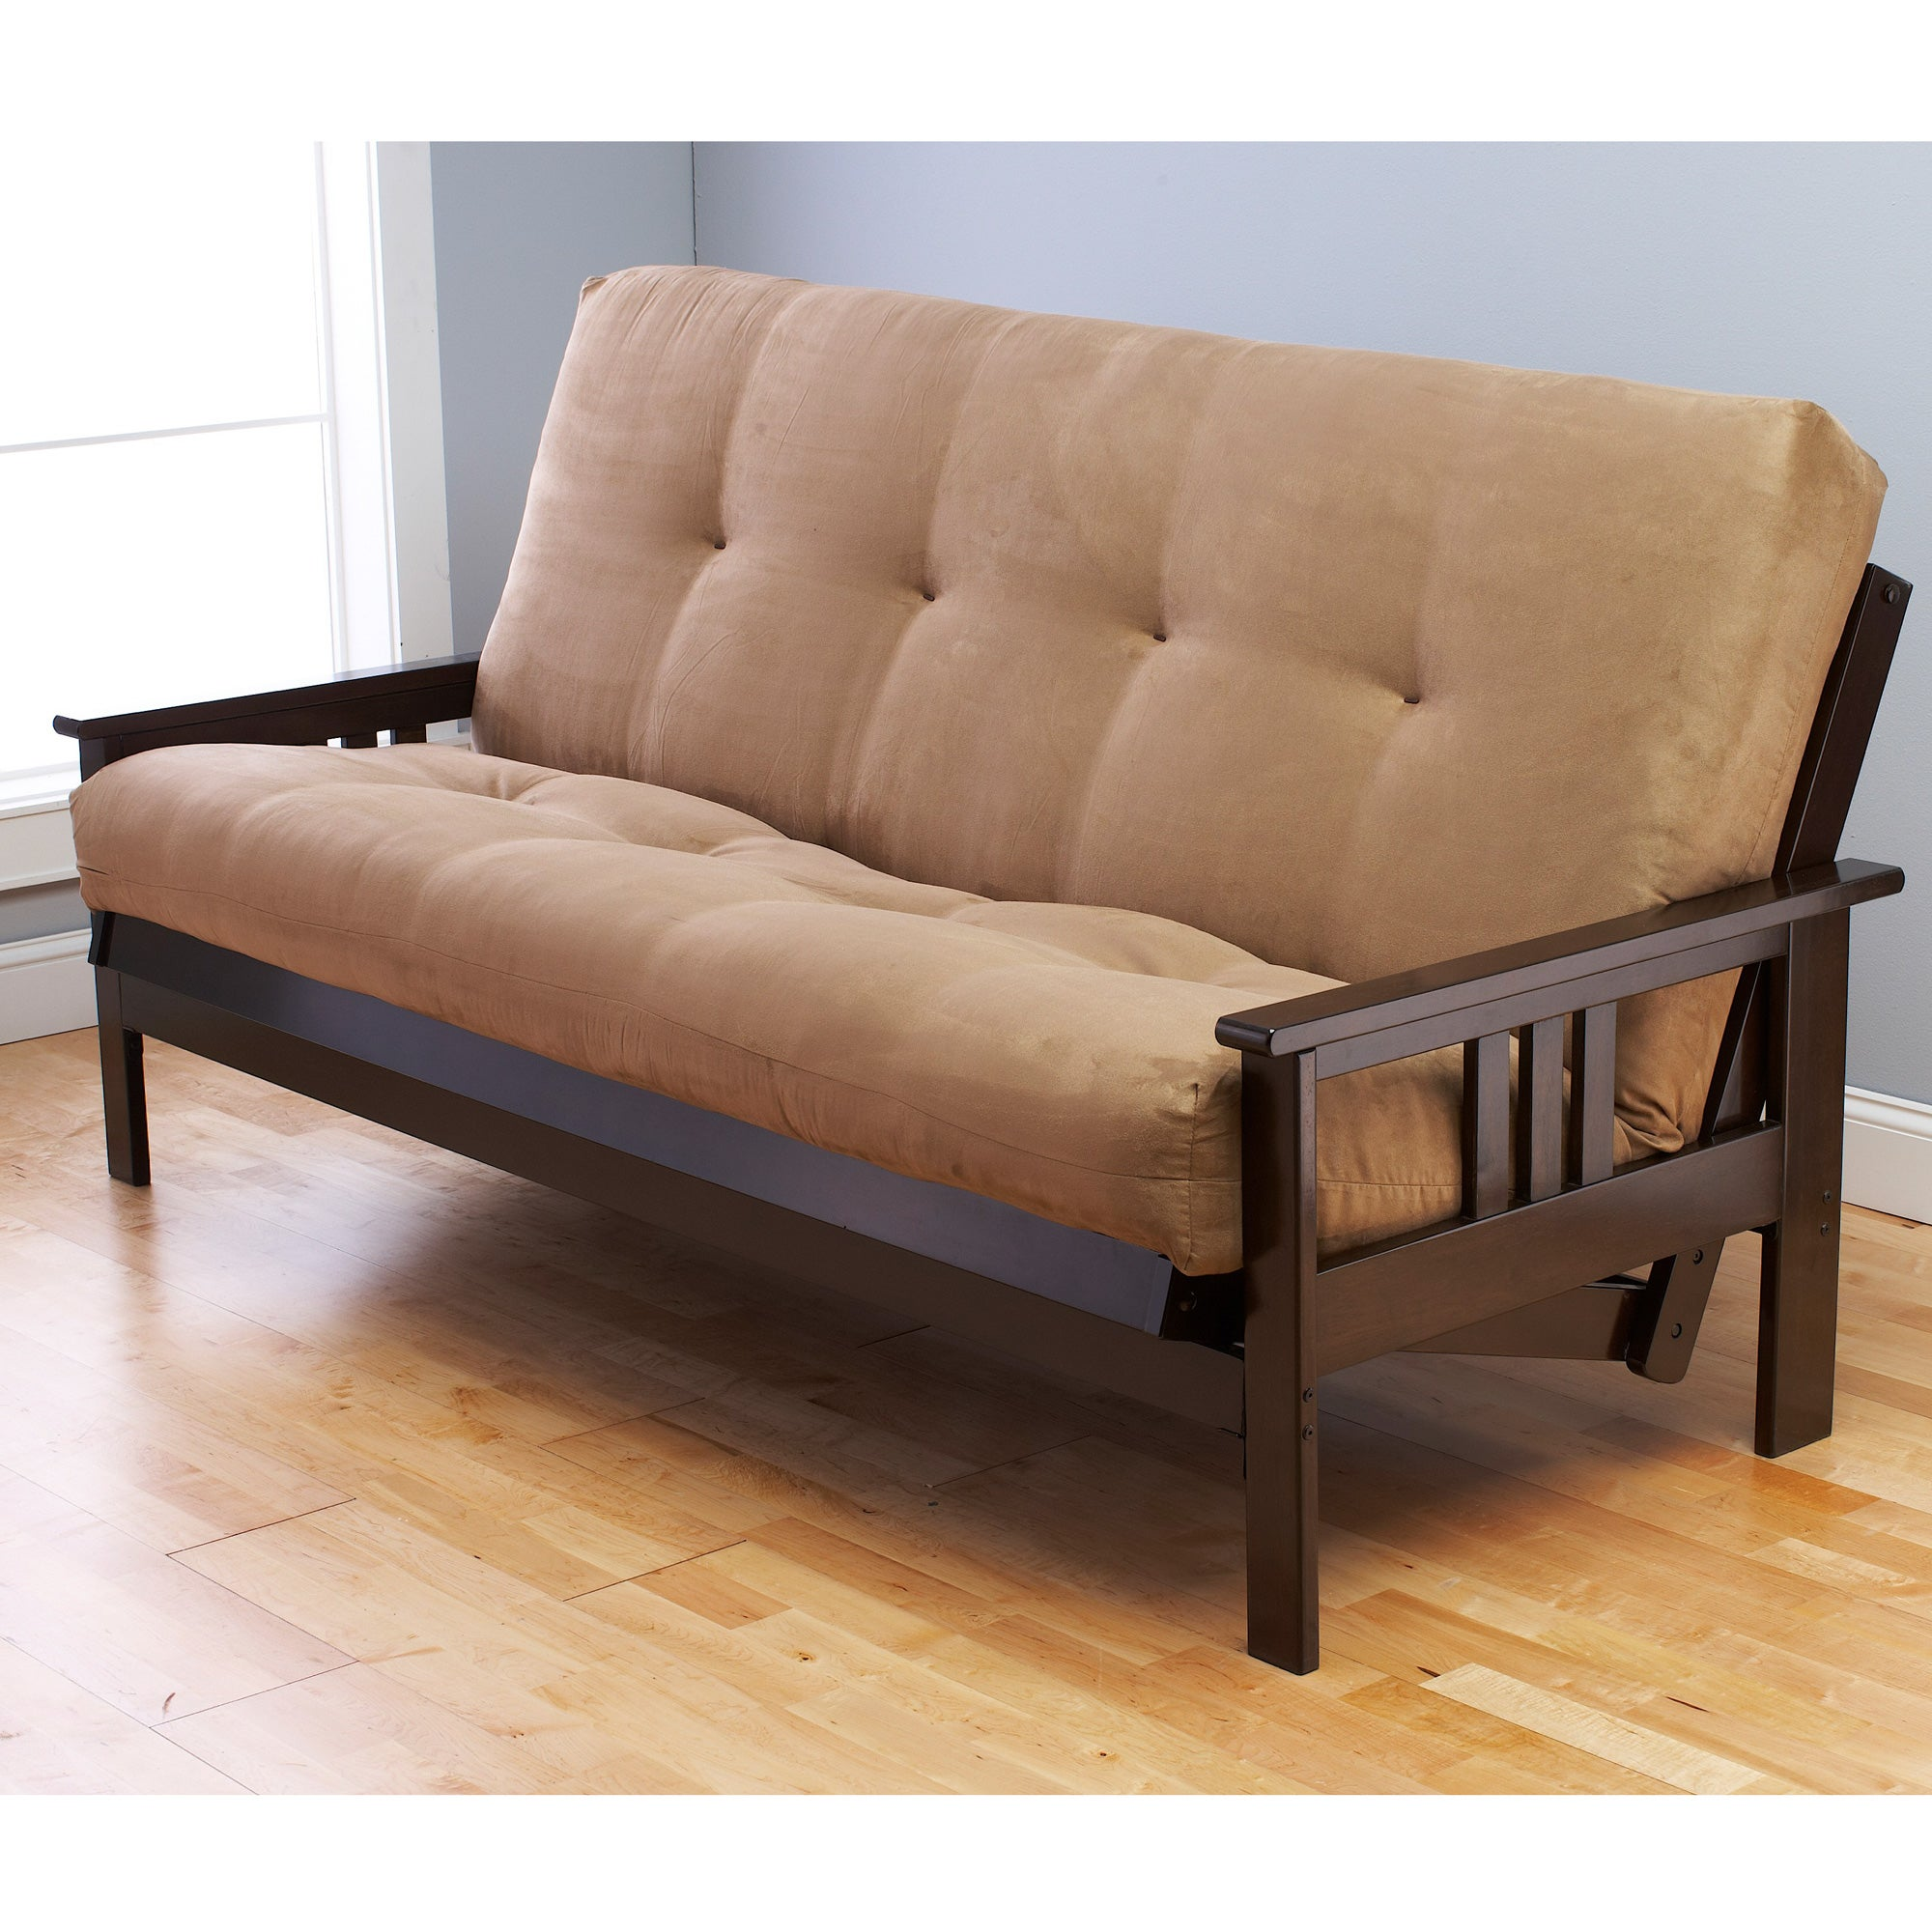 somette suedette full size solid futon cover   free shipping today   overstock     15416414 somette suedette full size solid futon cover   free shipping today      rh   overstock